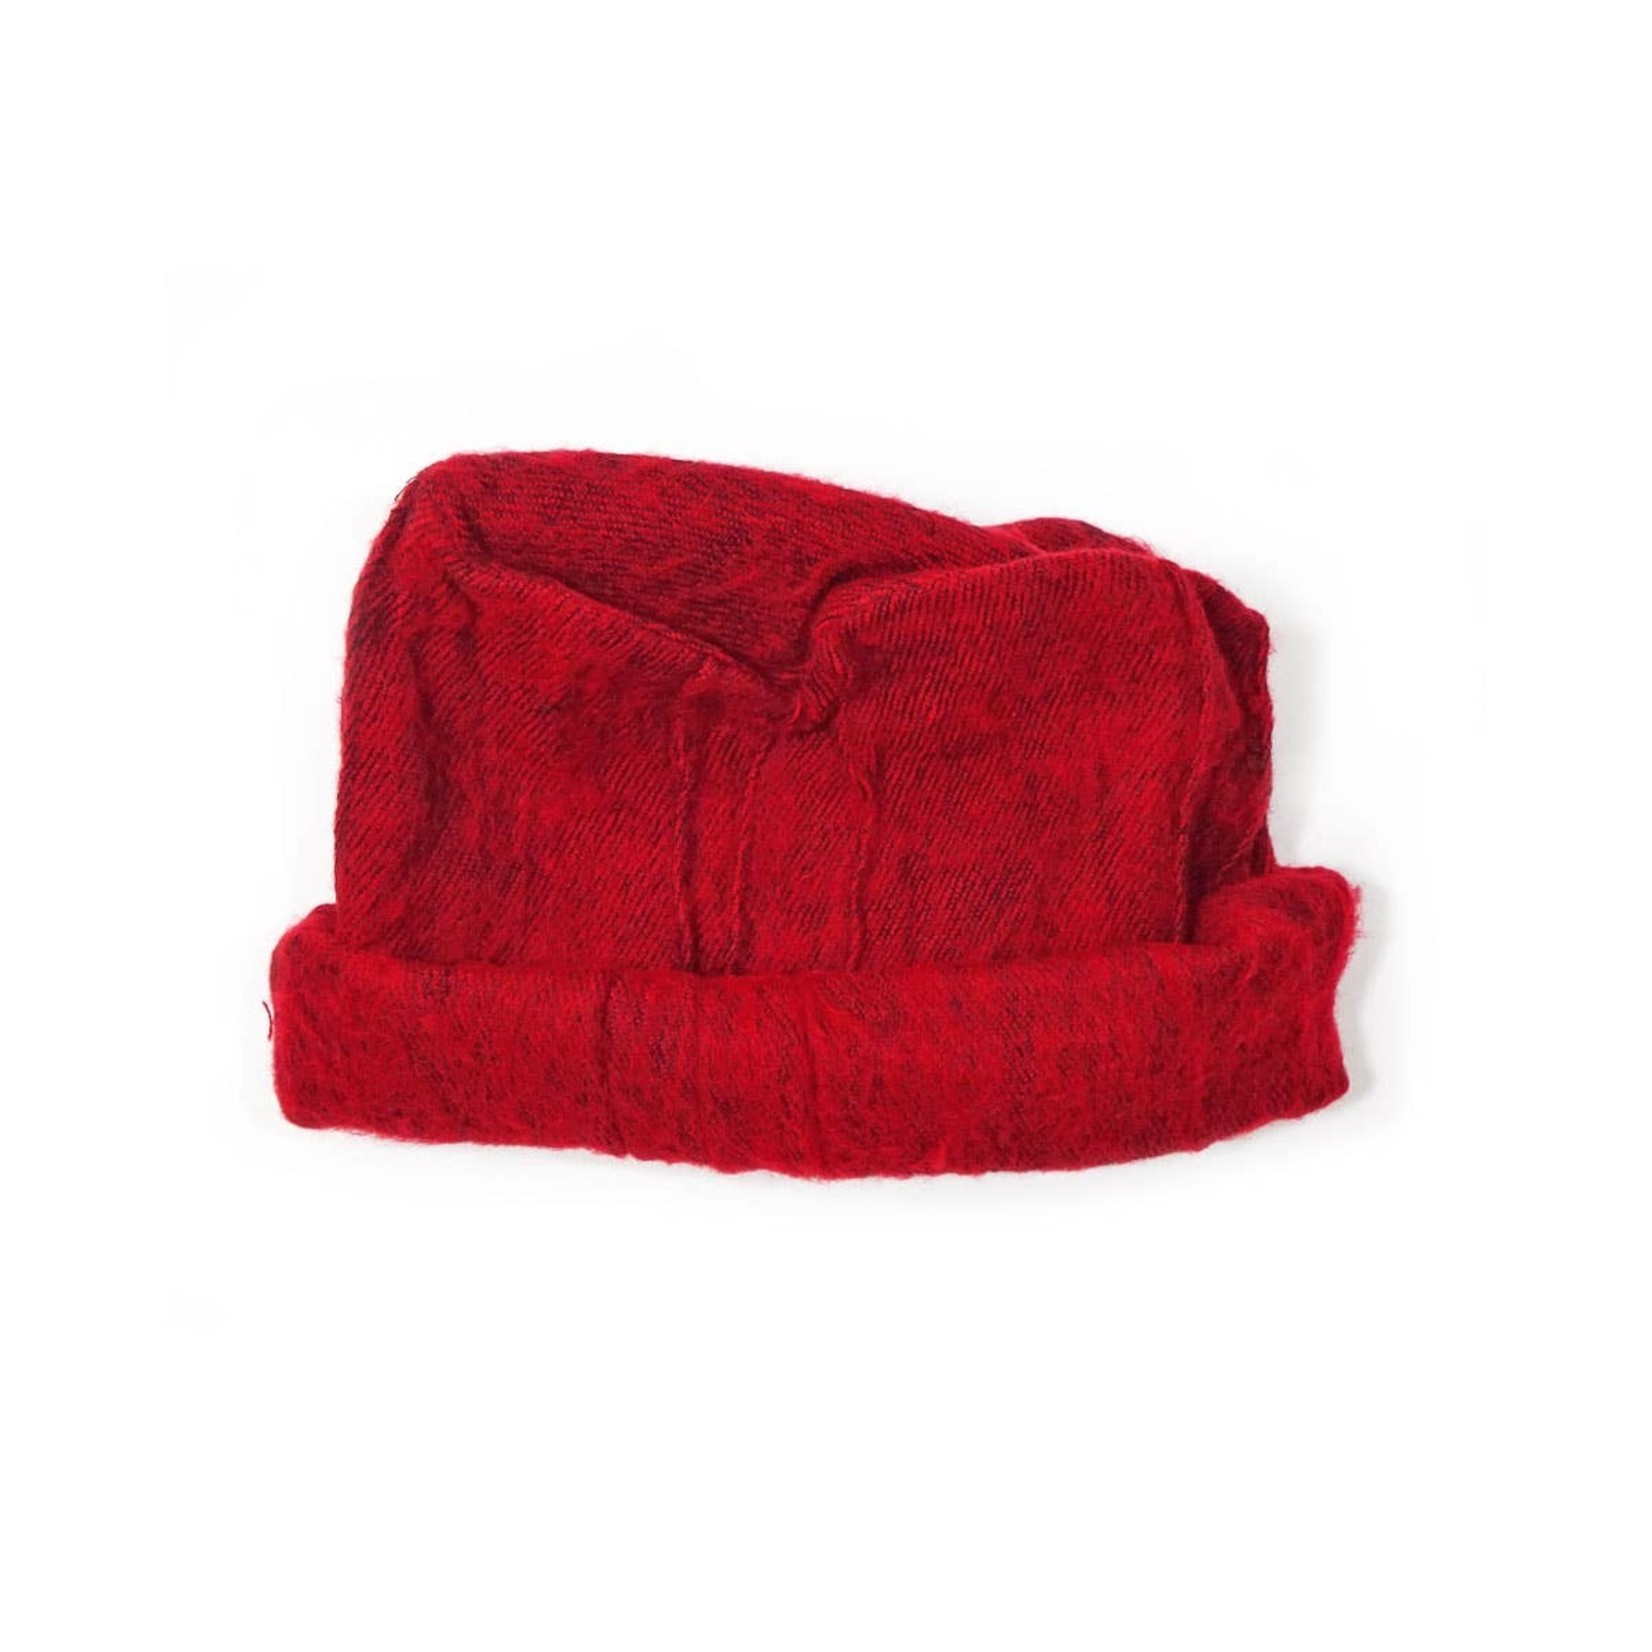 Zig Zag Asian Brushed Woven Pashtun Hat in Red